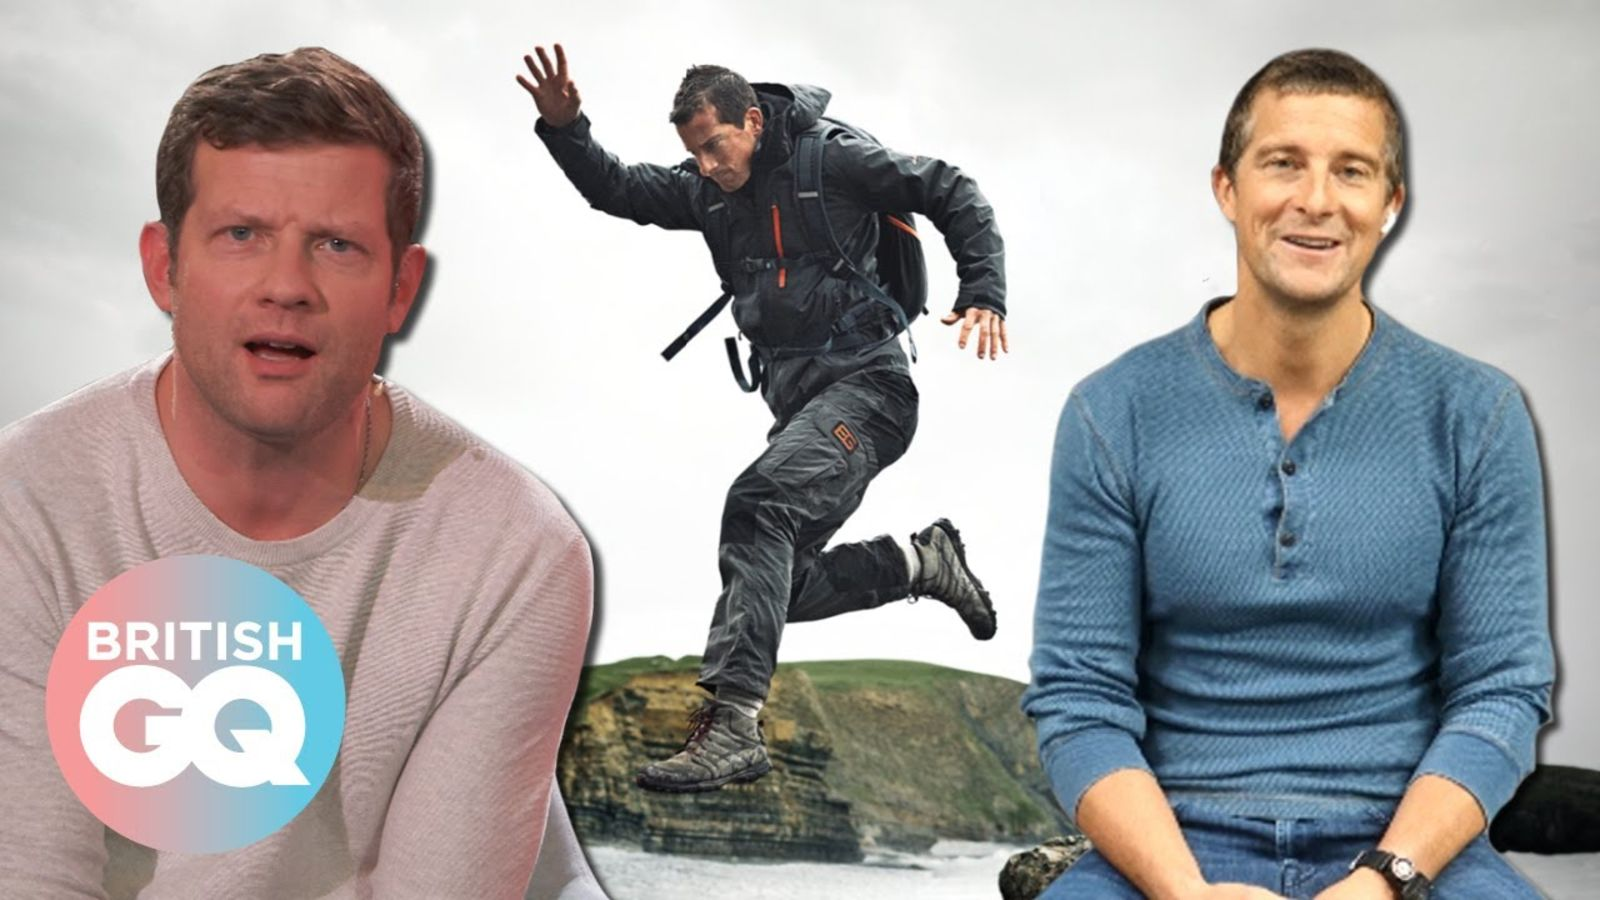 Bear Grylls on what he learned climbing Everest